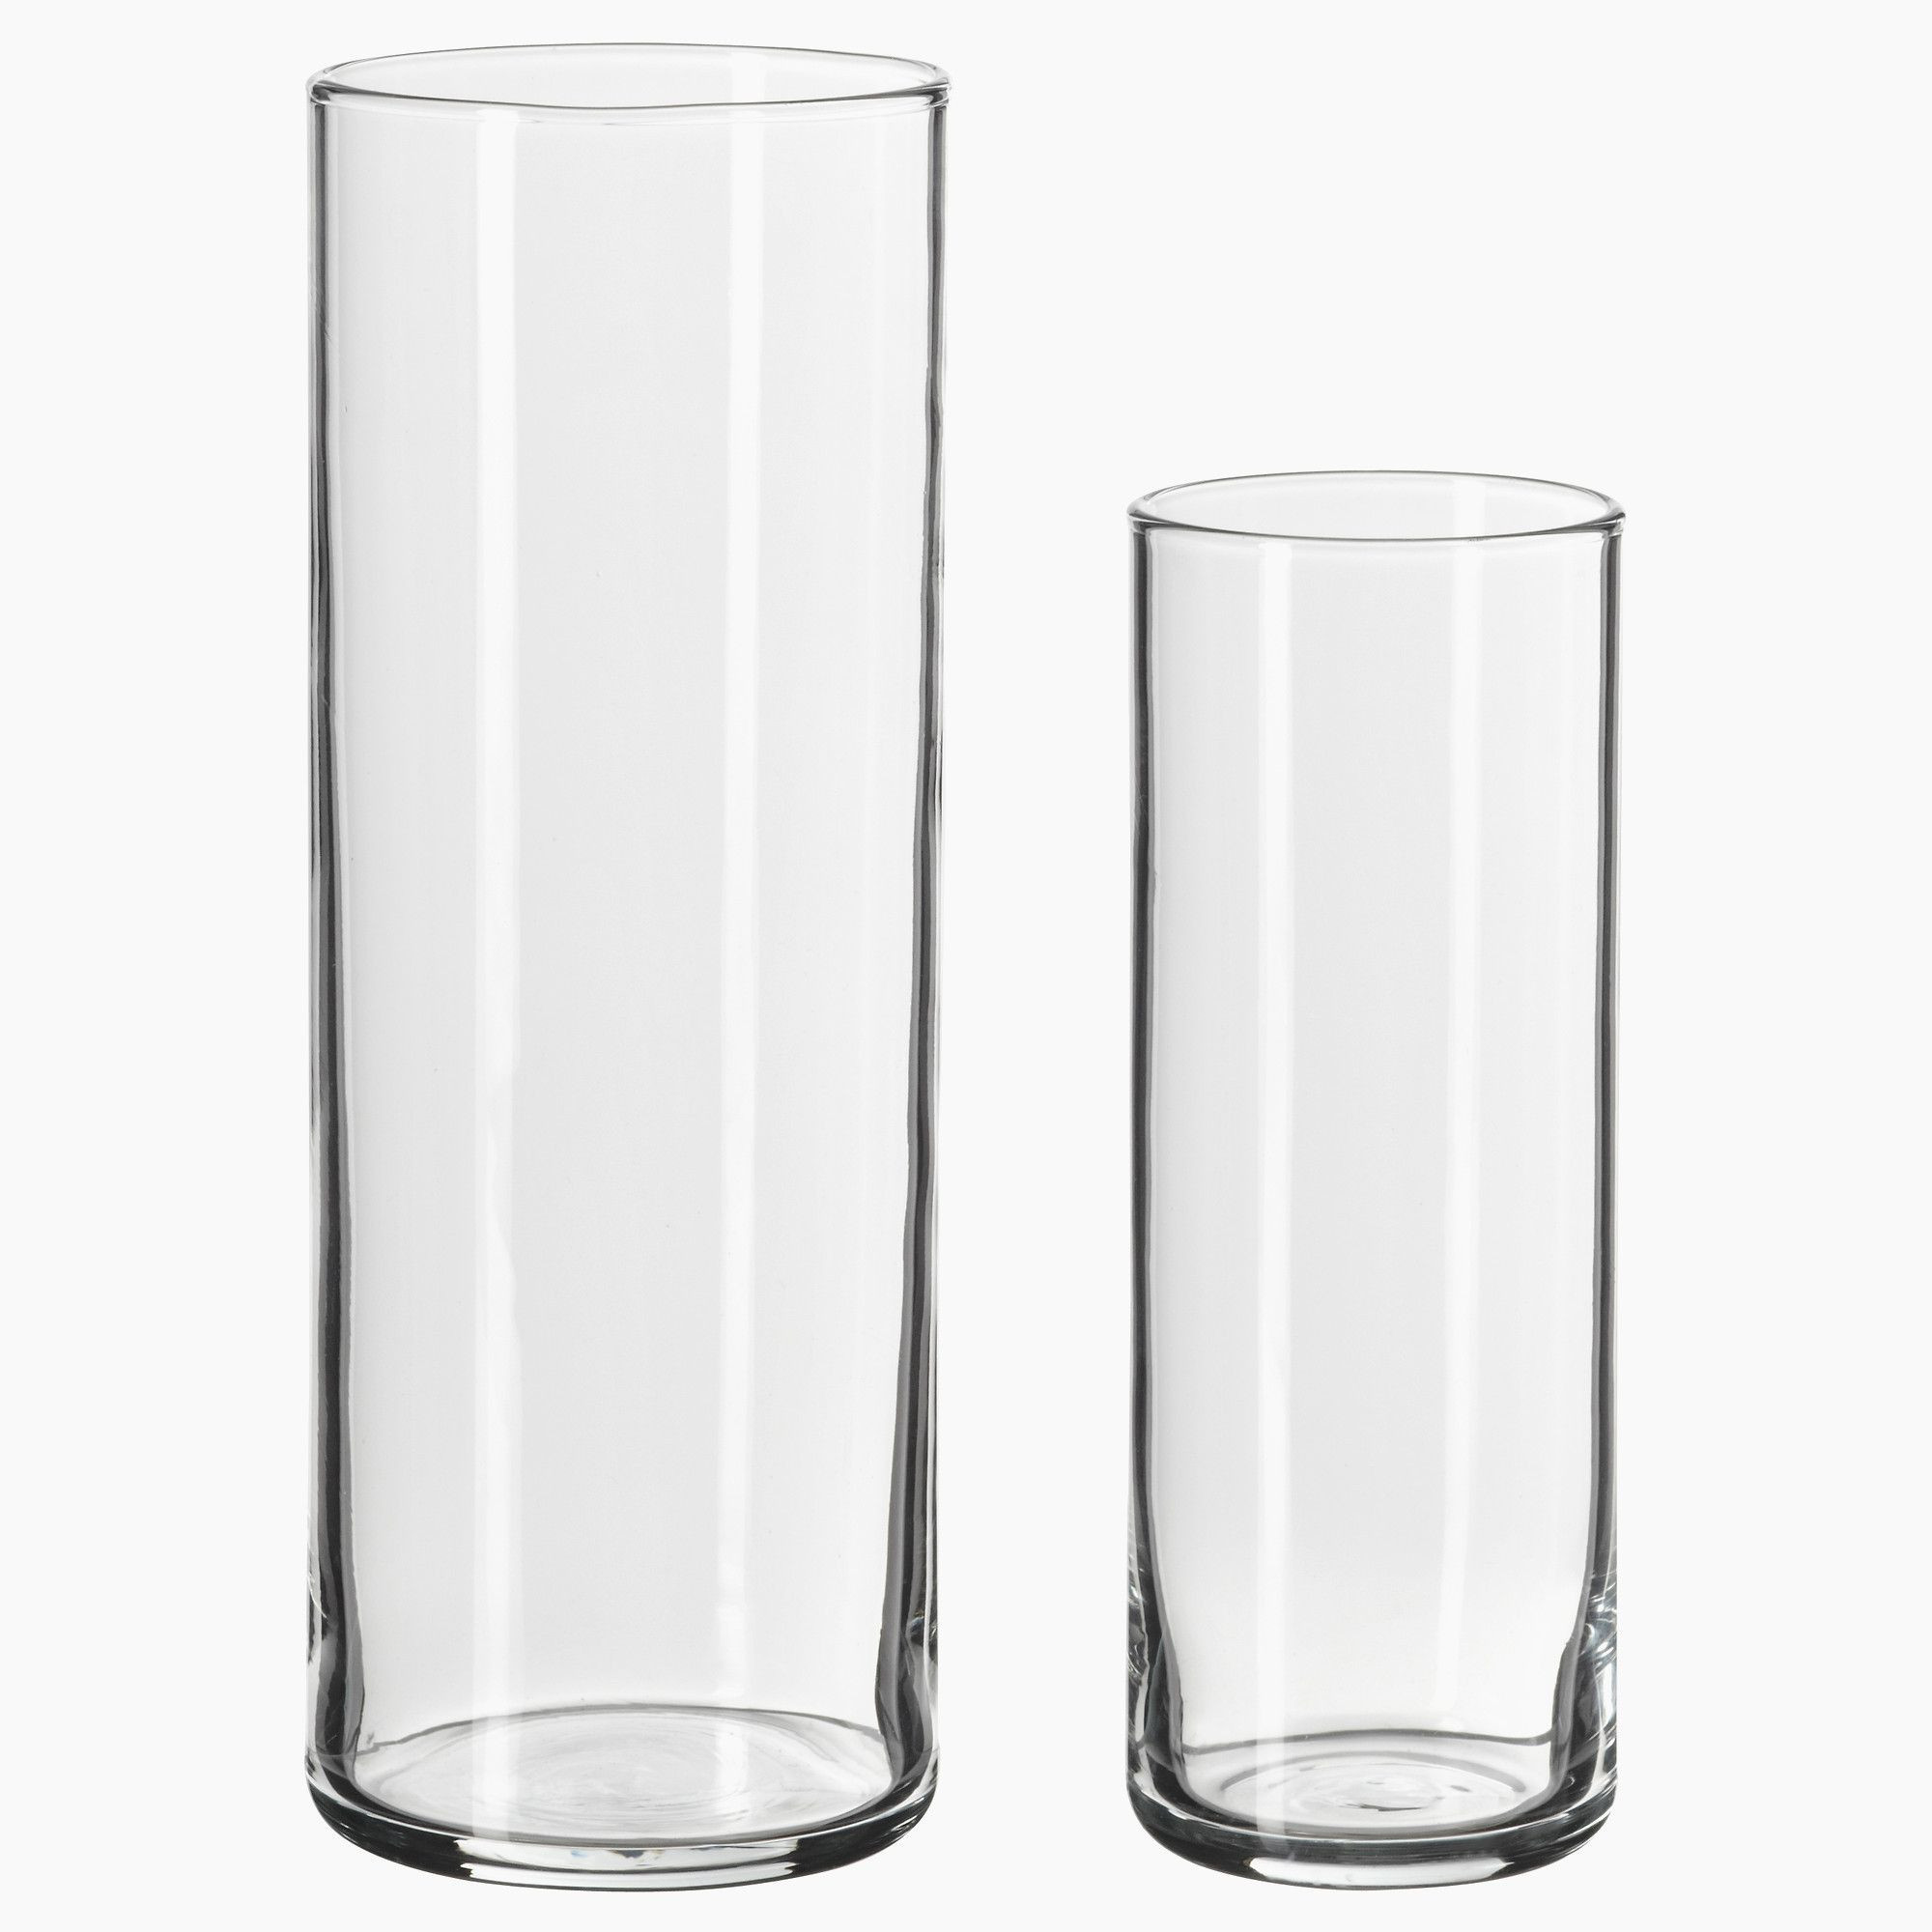 extra large glass vases of 24 tall vases for sale the weekly world for wooden wall vase new tall vase centerpiece ideas vases flowers in